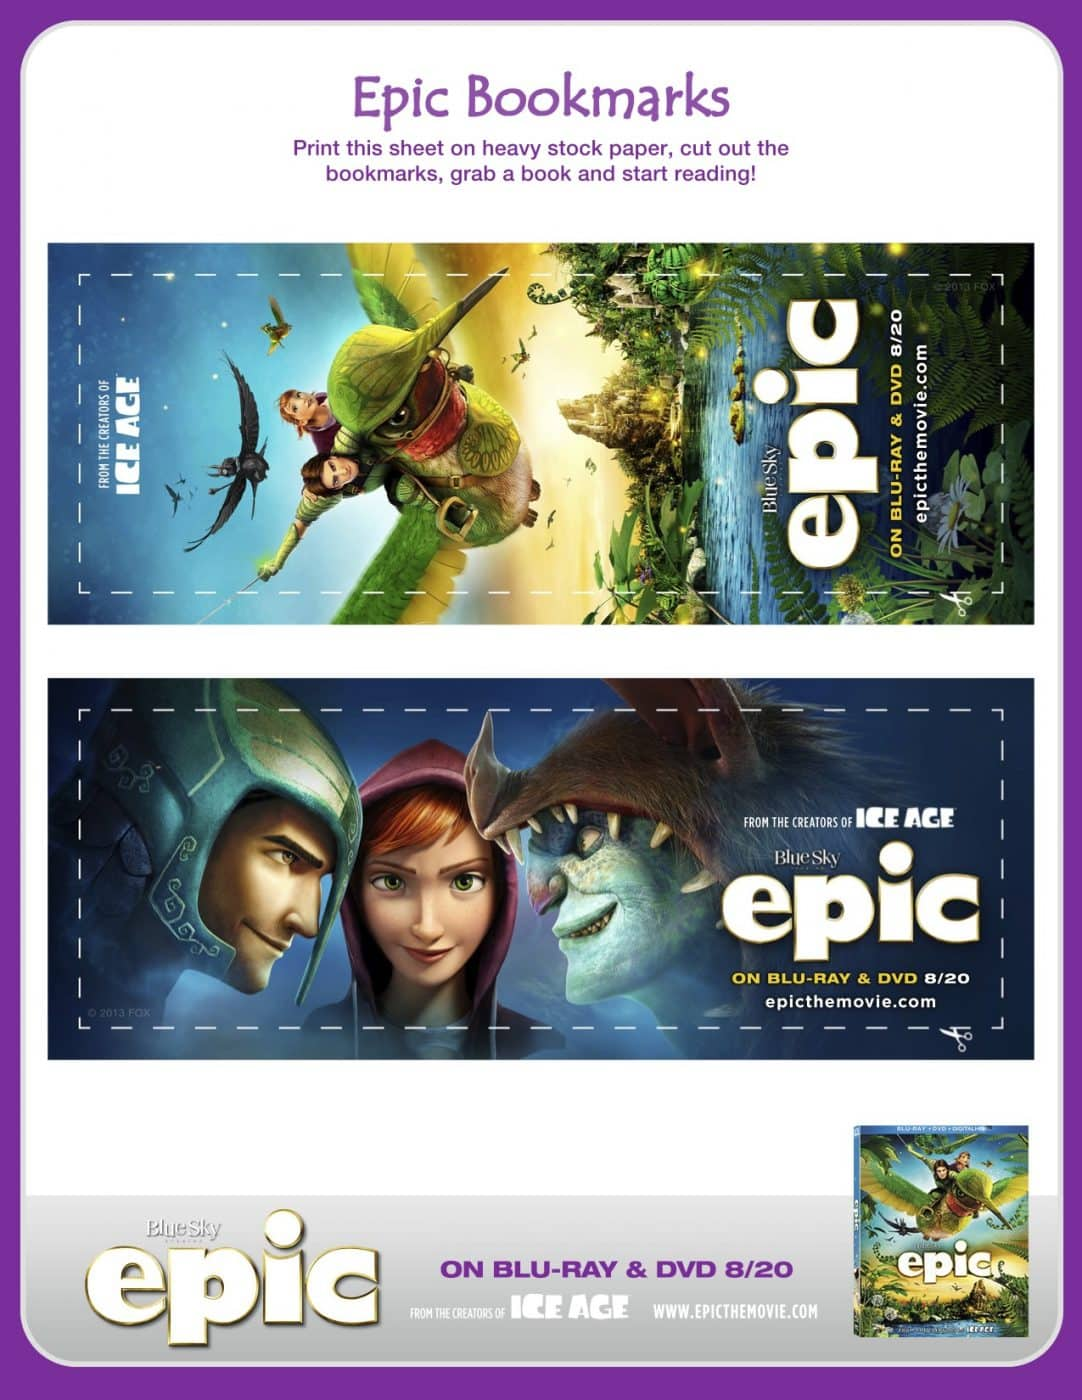 EPIC Bookmarks